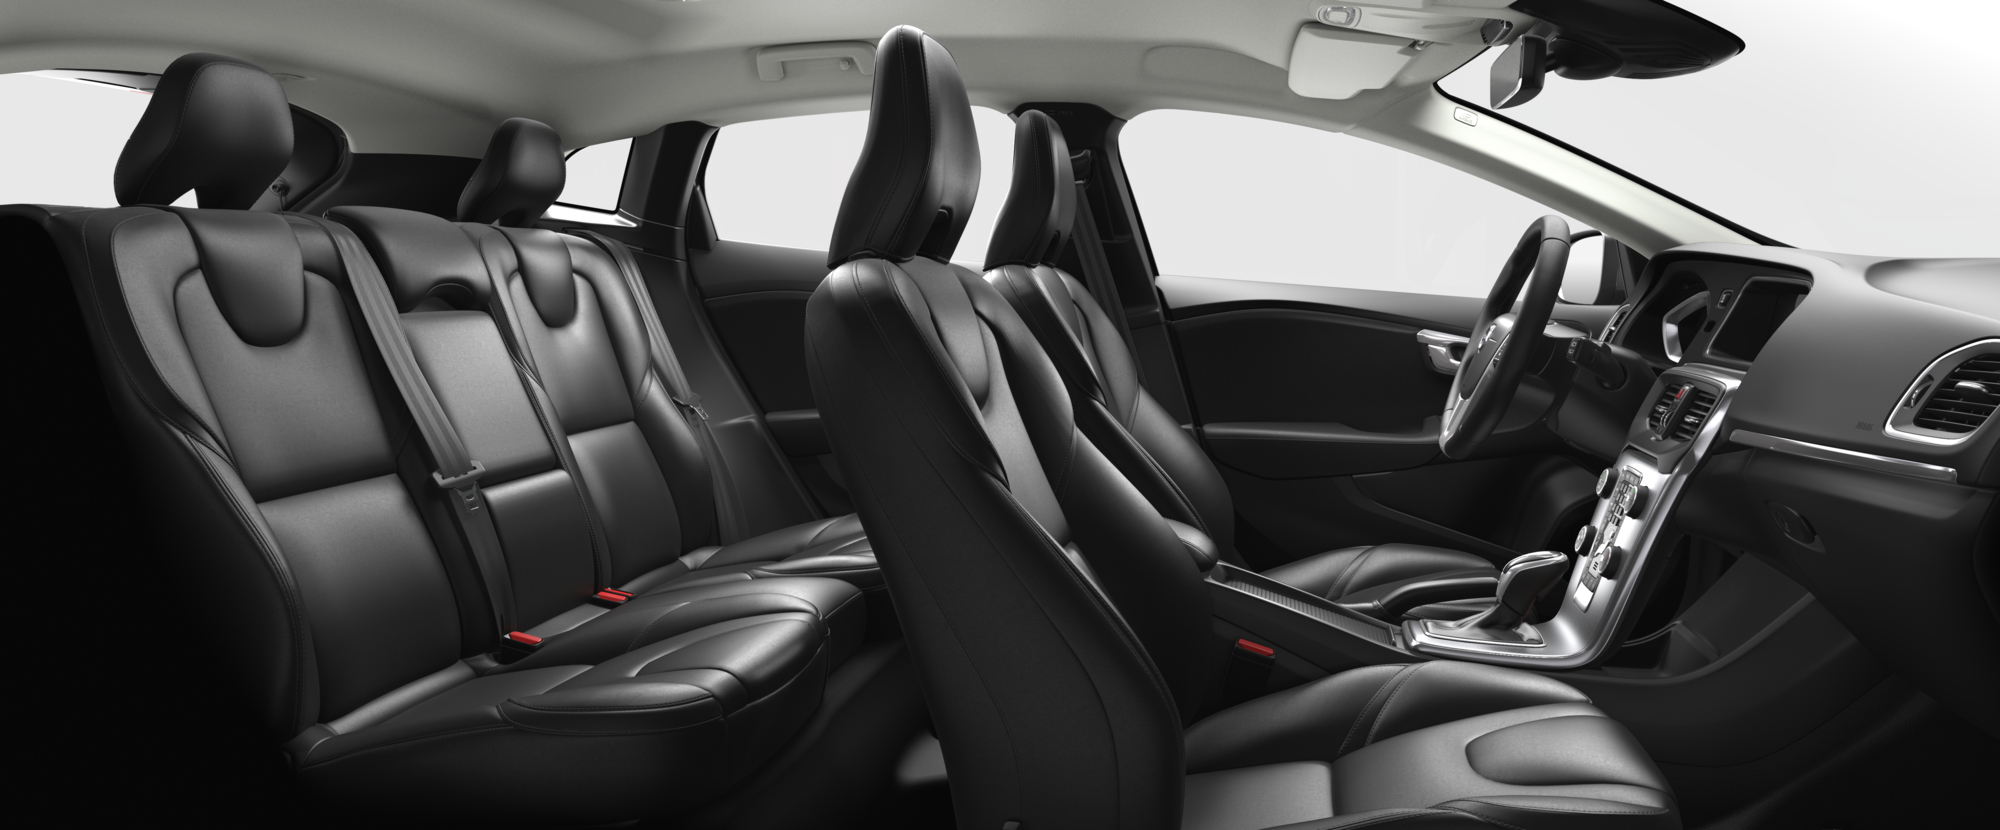 Interior shot of the Volvo V40 with Charcoal Leather Seats